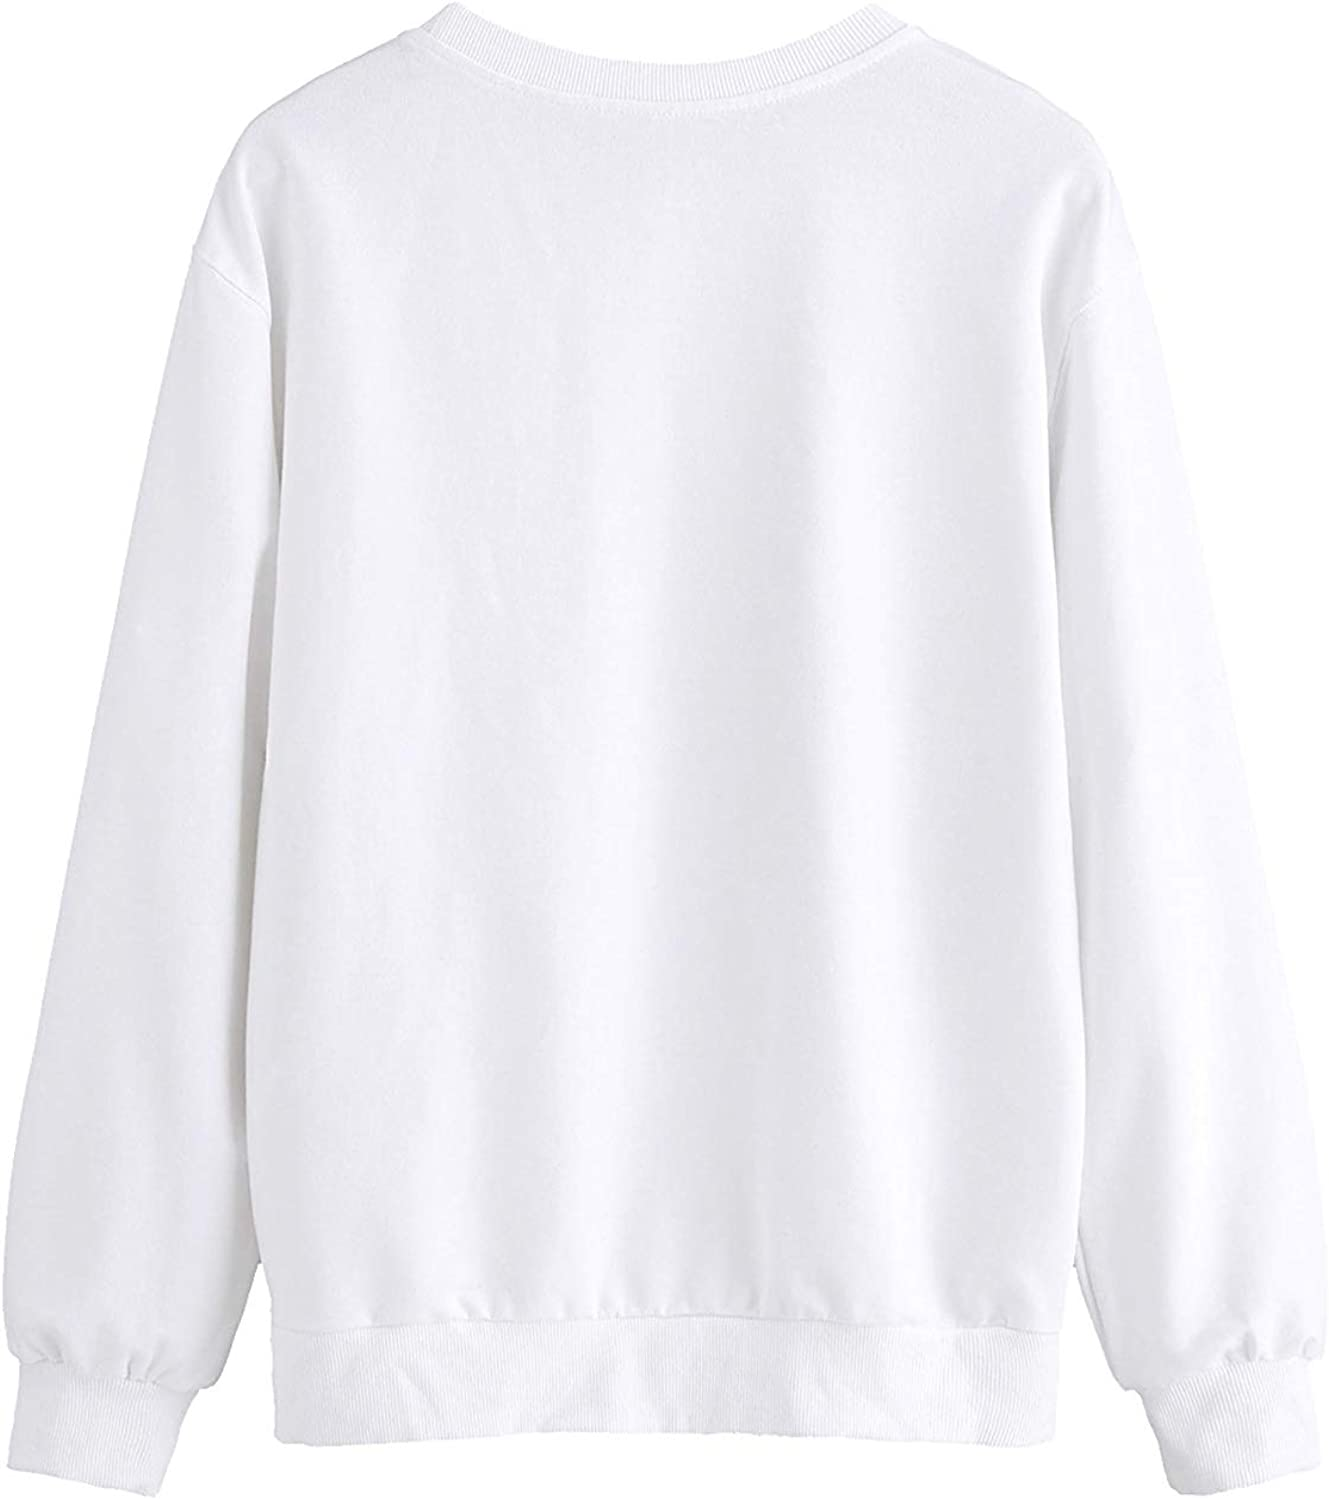 WLLW Fall Clothes Women Homebody Pullover Tops Solid Color Long Sleeve Sweatshirt